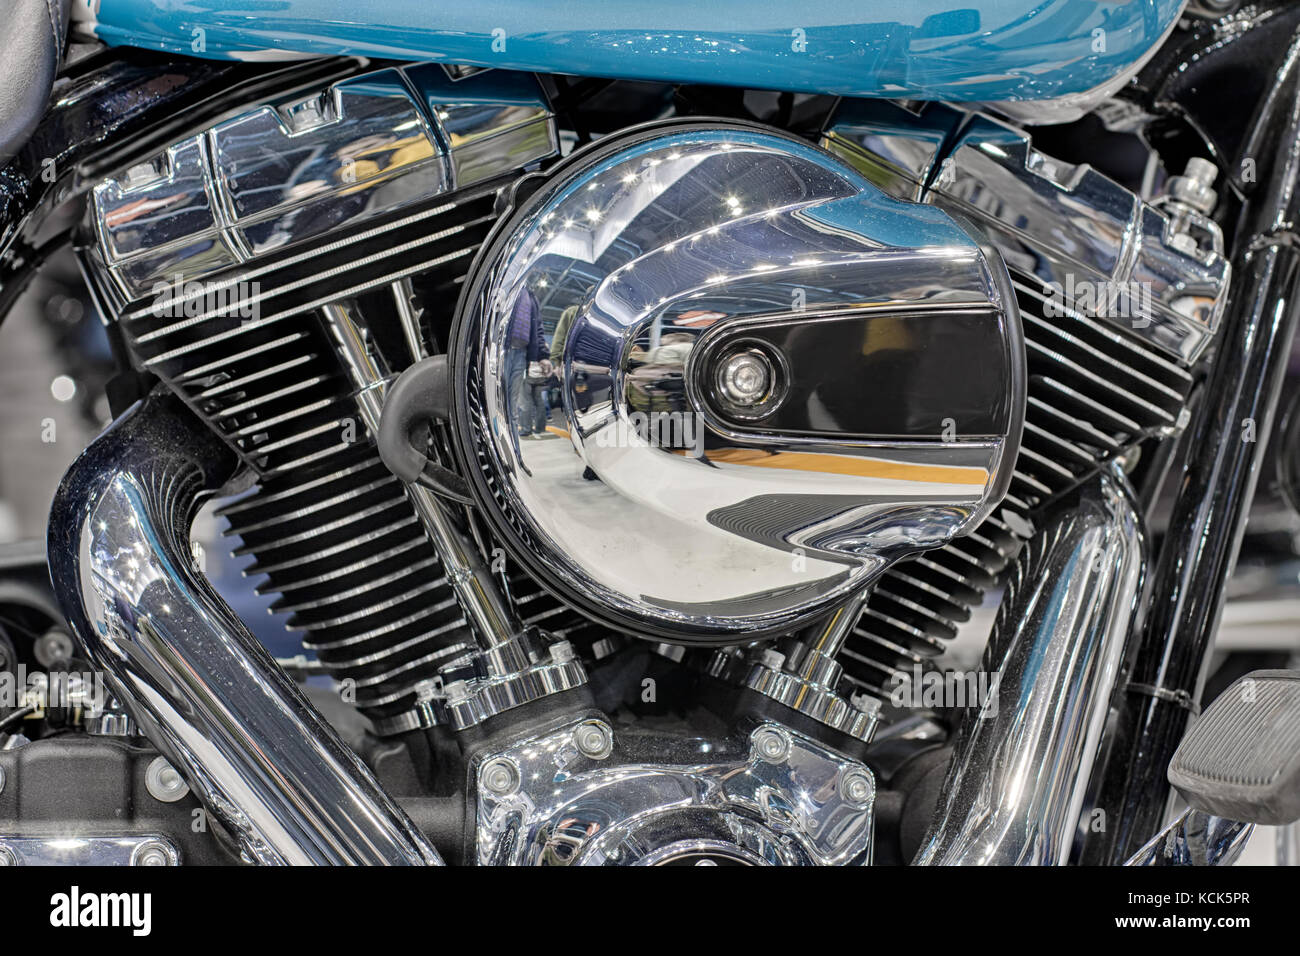 Twin Air Engine Oil Cooler : Oil cooler stock photos images alamy